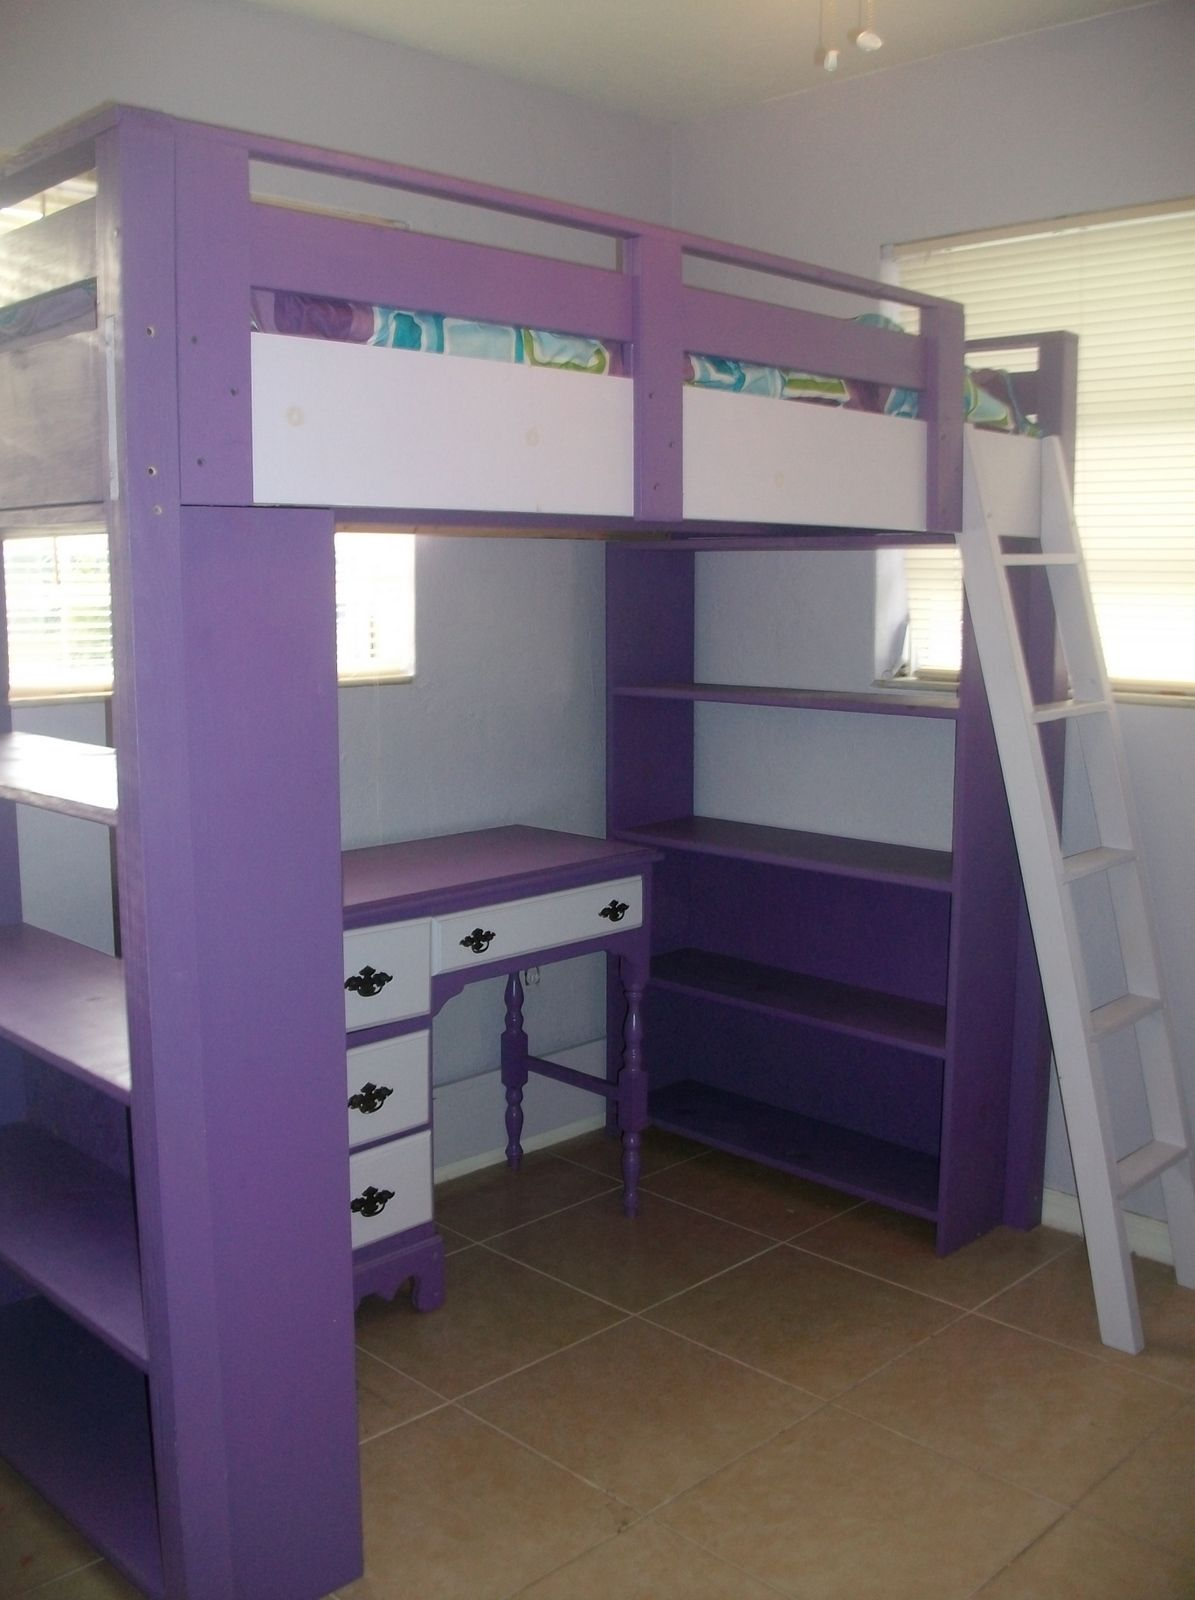 Bunk bed with stairs and desk plans - Diy Loft Bed Plans With A Desk Under Purple Loft Bed With Bookcases Do